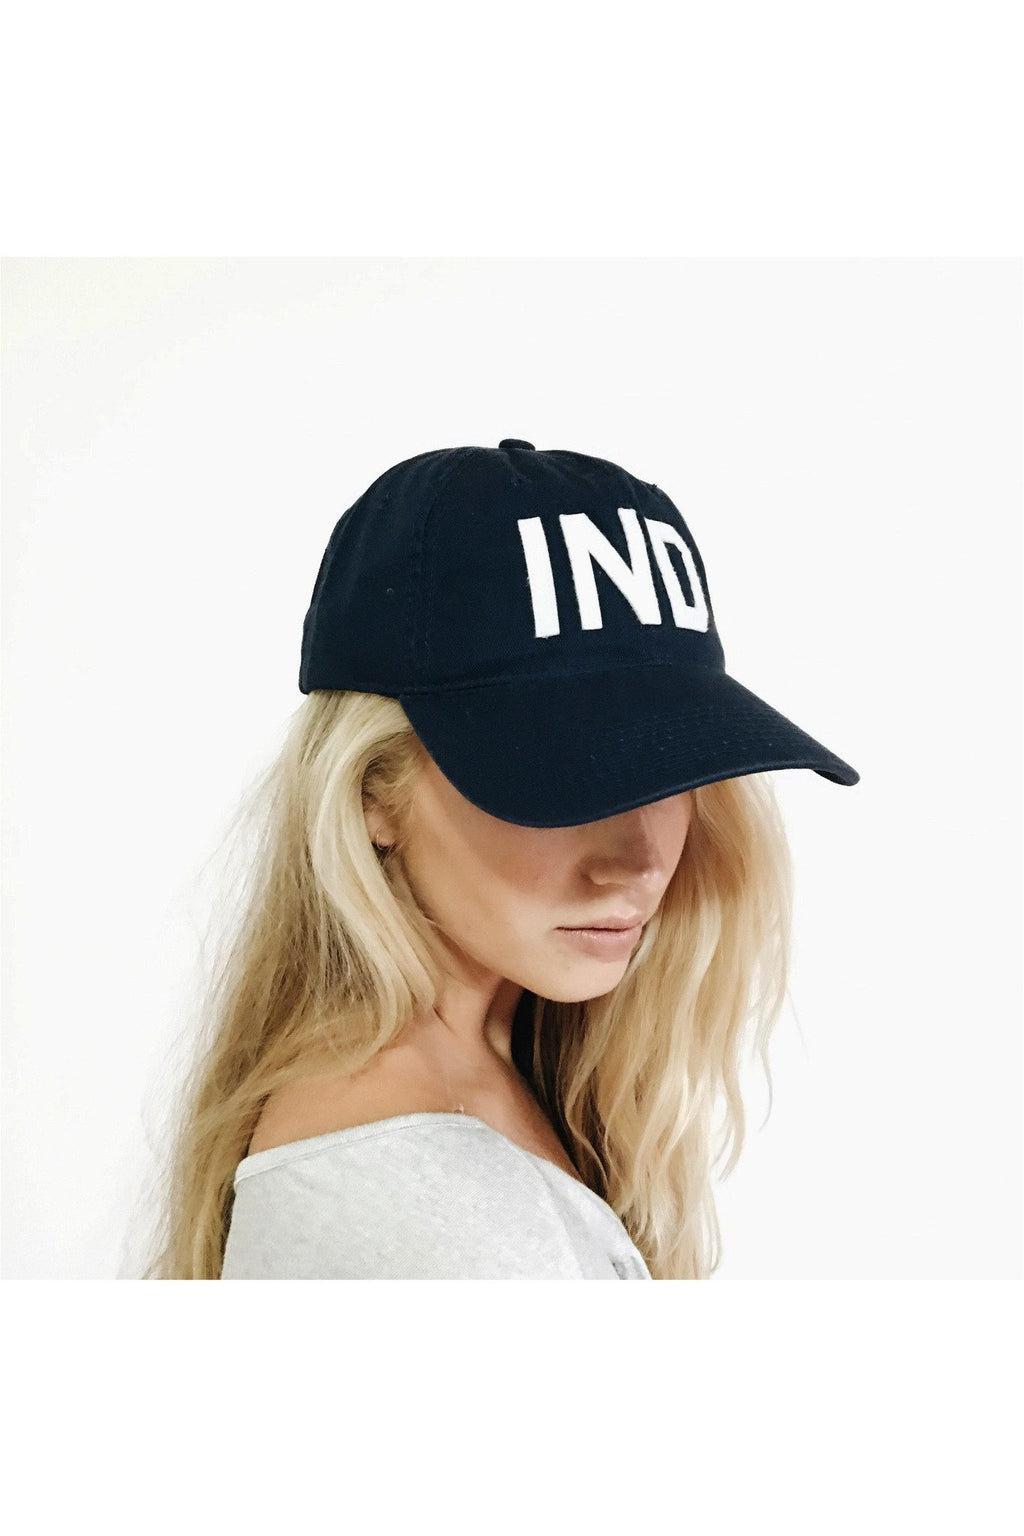 Aviate Hat-IND-bluepeppermint-boutique